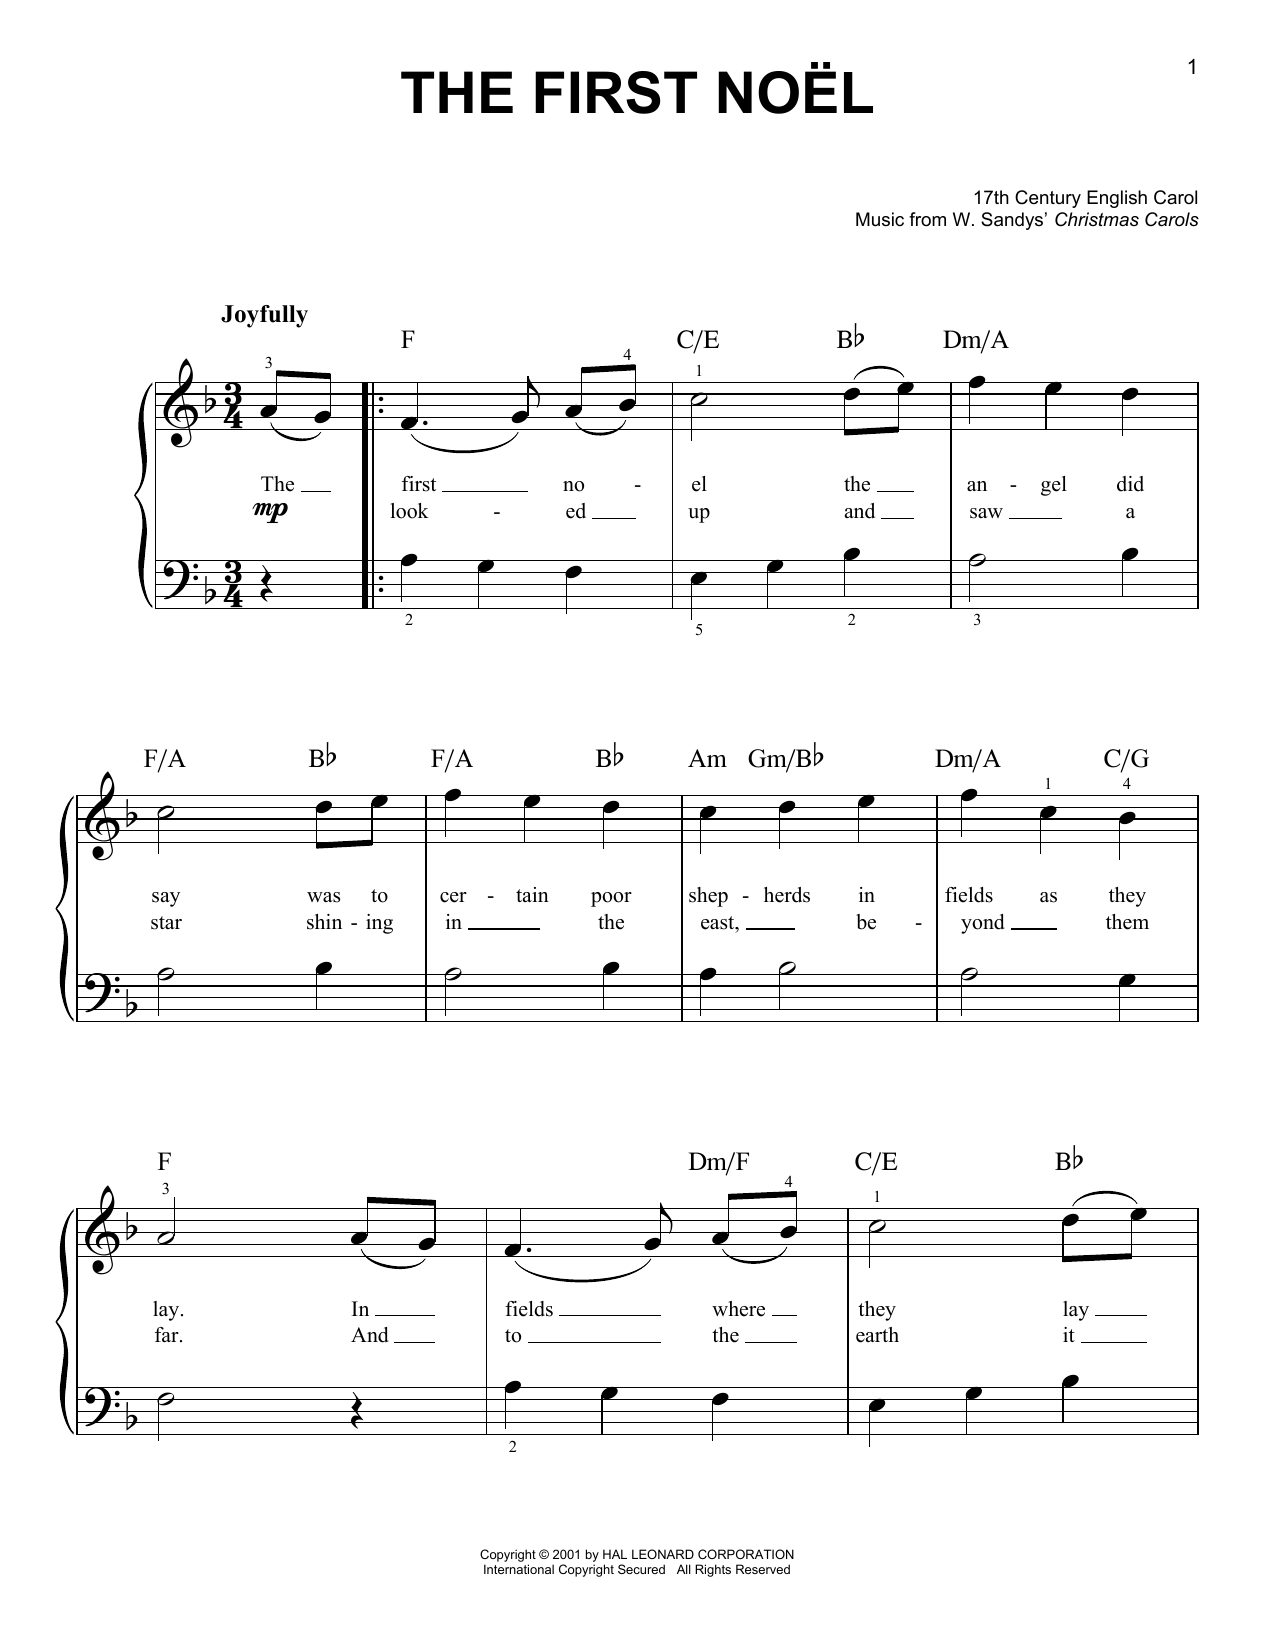 W Sandys Christmas Carols The First Noel Sheet Music Notes Chords Easy Piano Download Winter 159978 Pdf